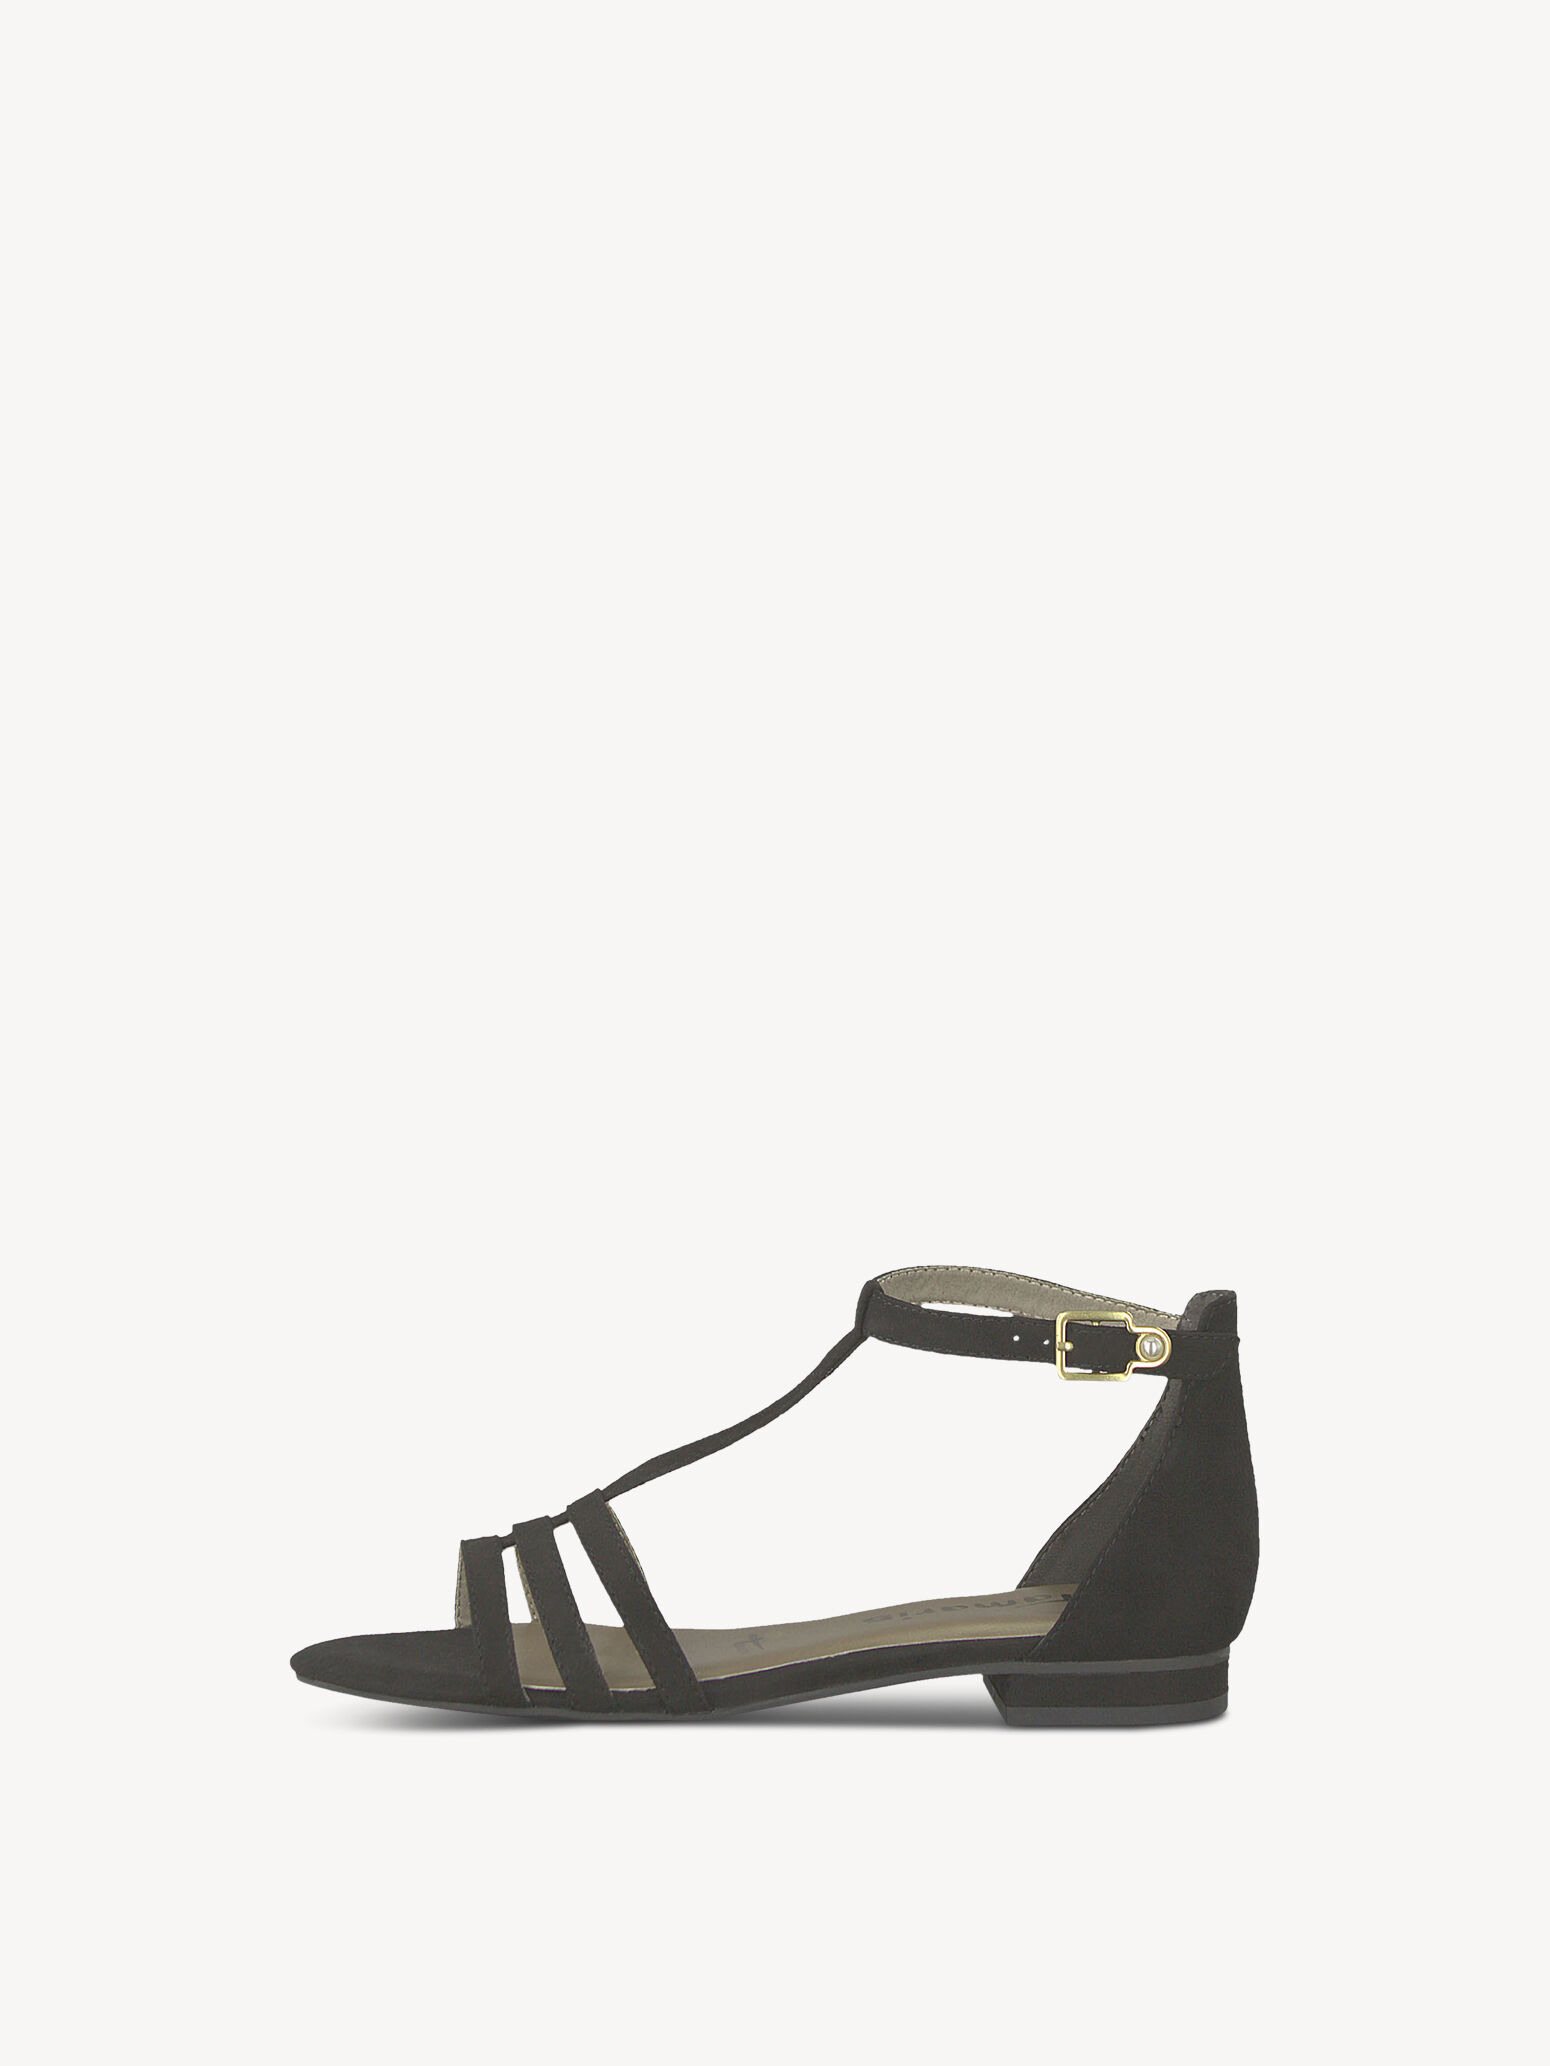 Tamaris Womens Sandals Black Schwarz (BLACK UNI) Size: 3